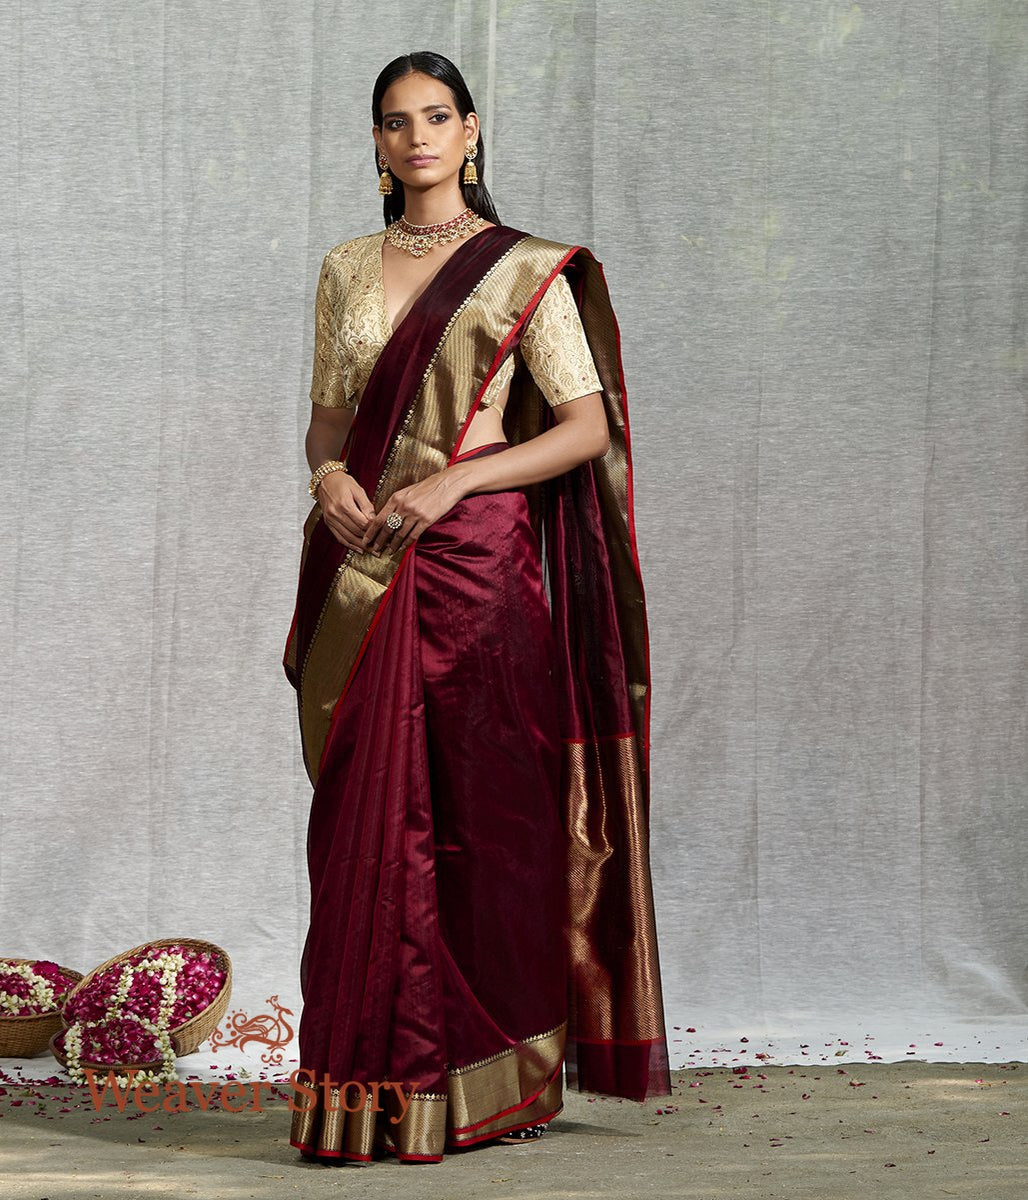 Handwoven Maroon Plain Silk Cotton Saree with Solid Zari Border